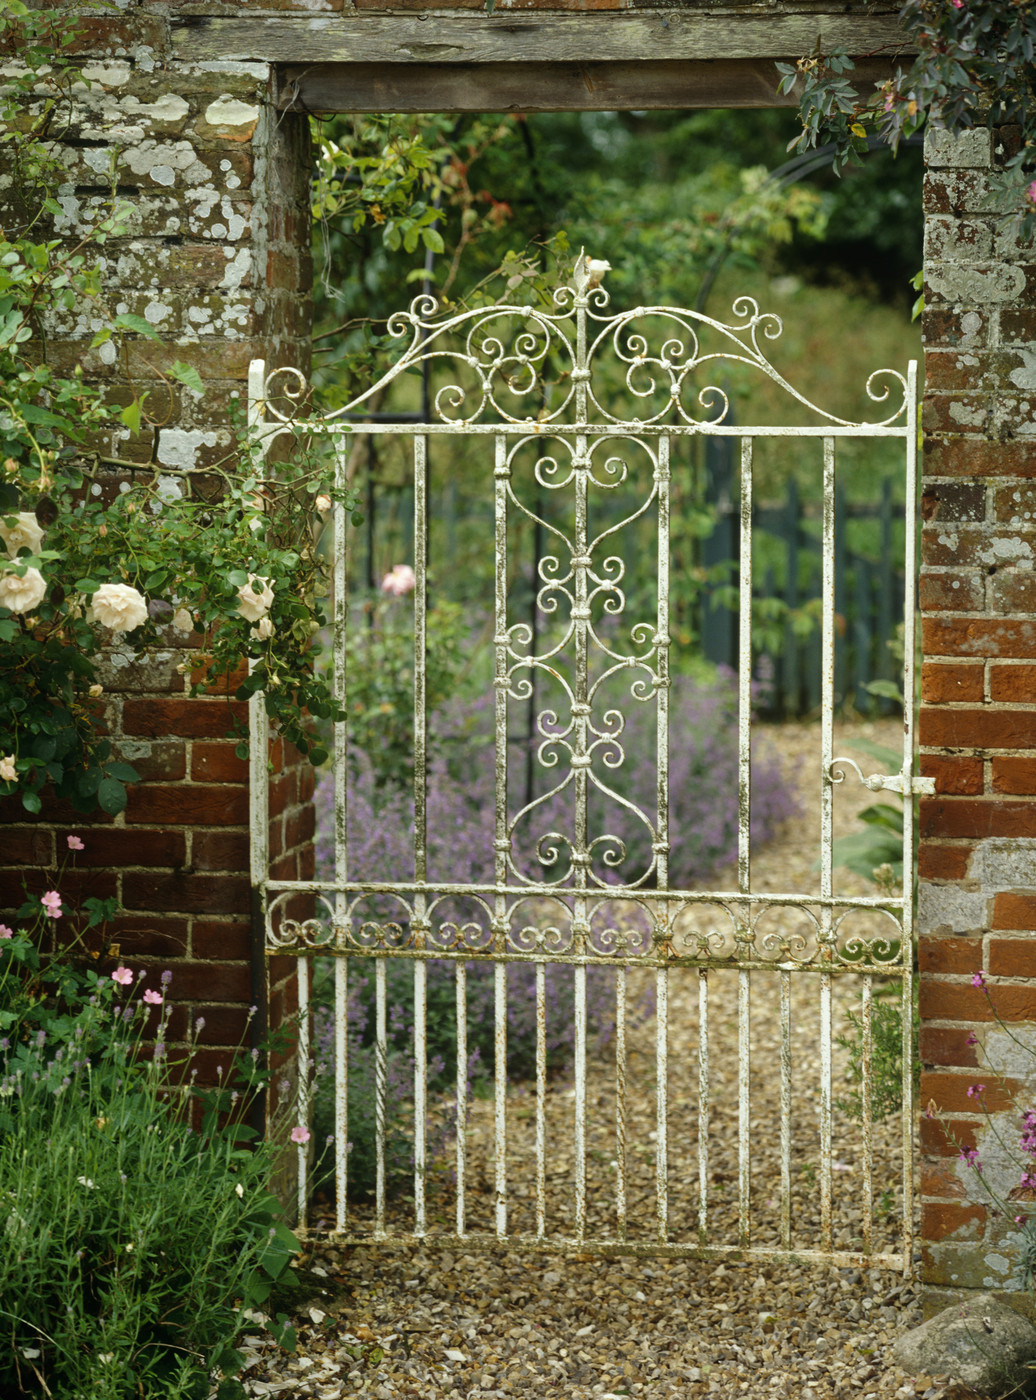 Rustic gate photos design ideas remodel and decor lonny for Garden gate designs wood rustic